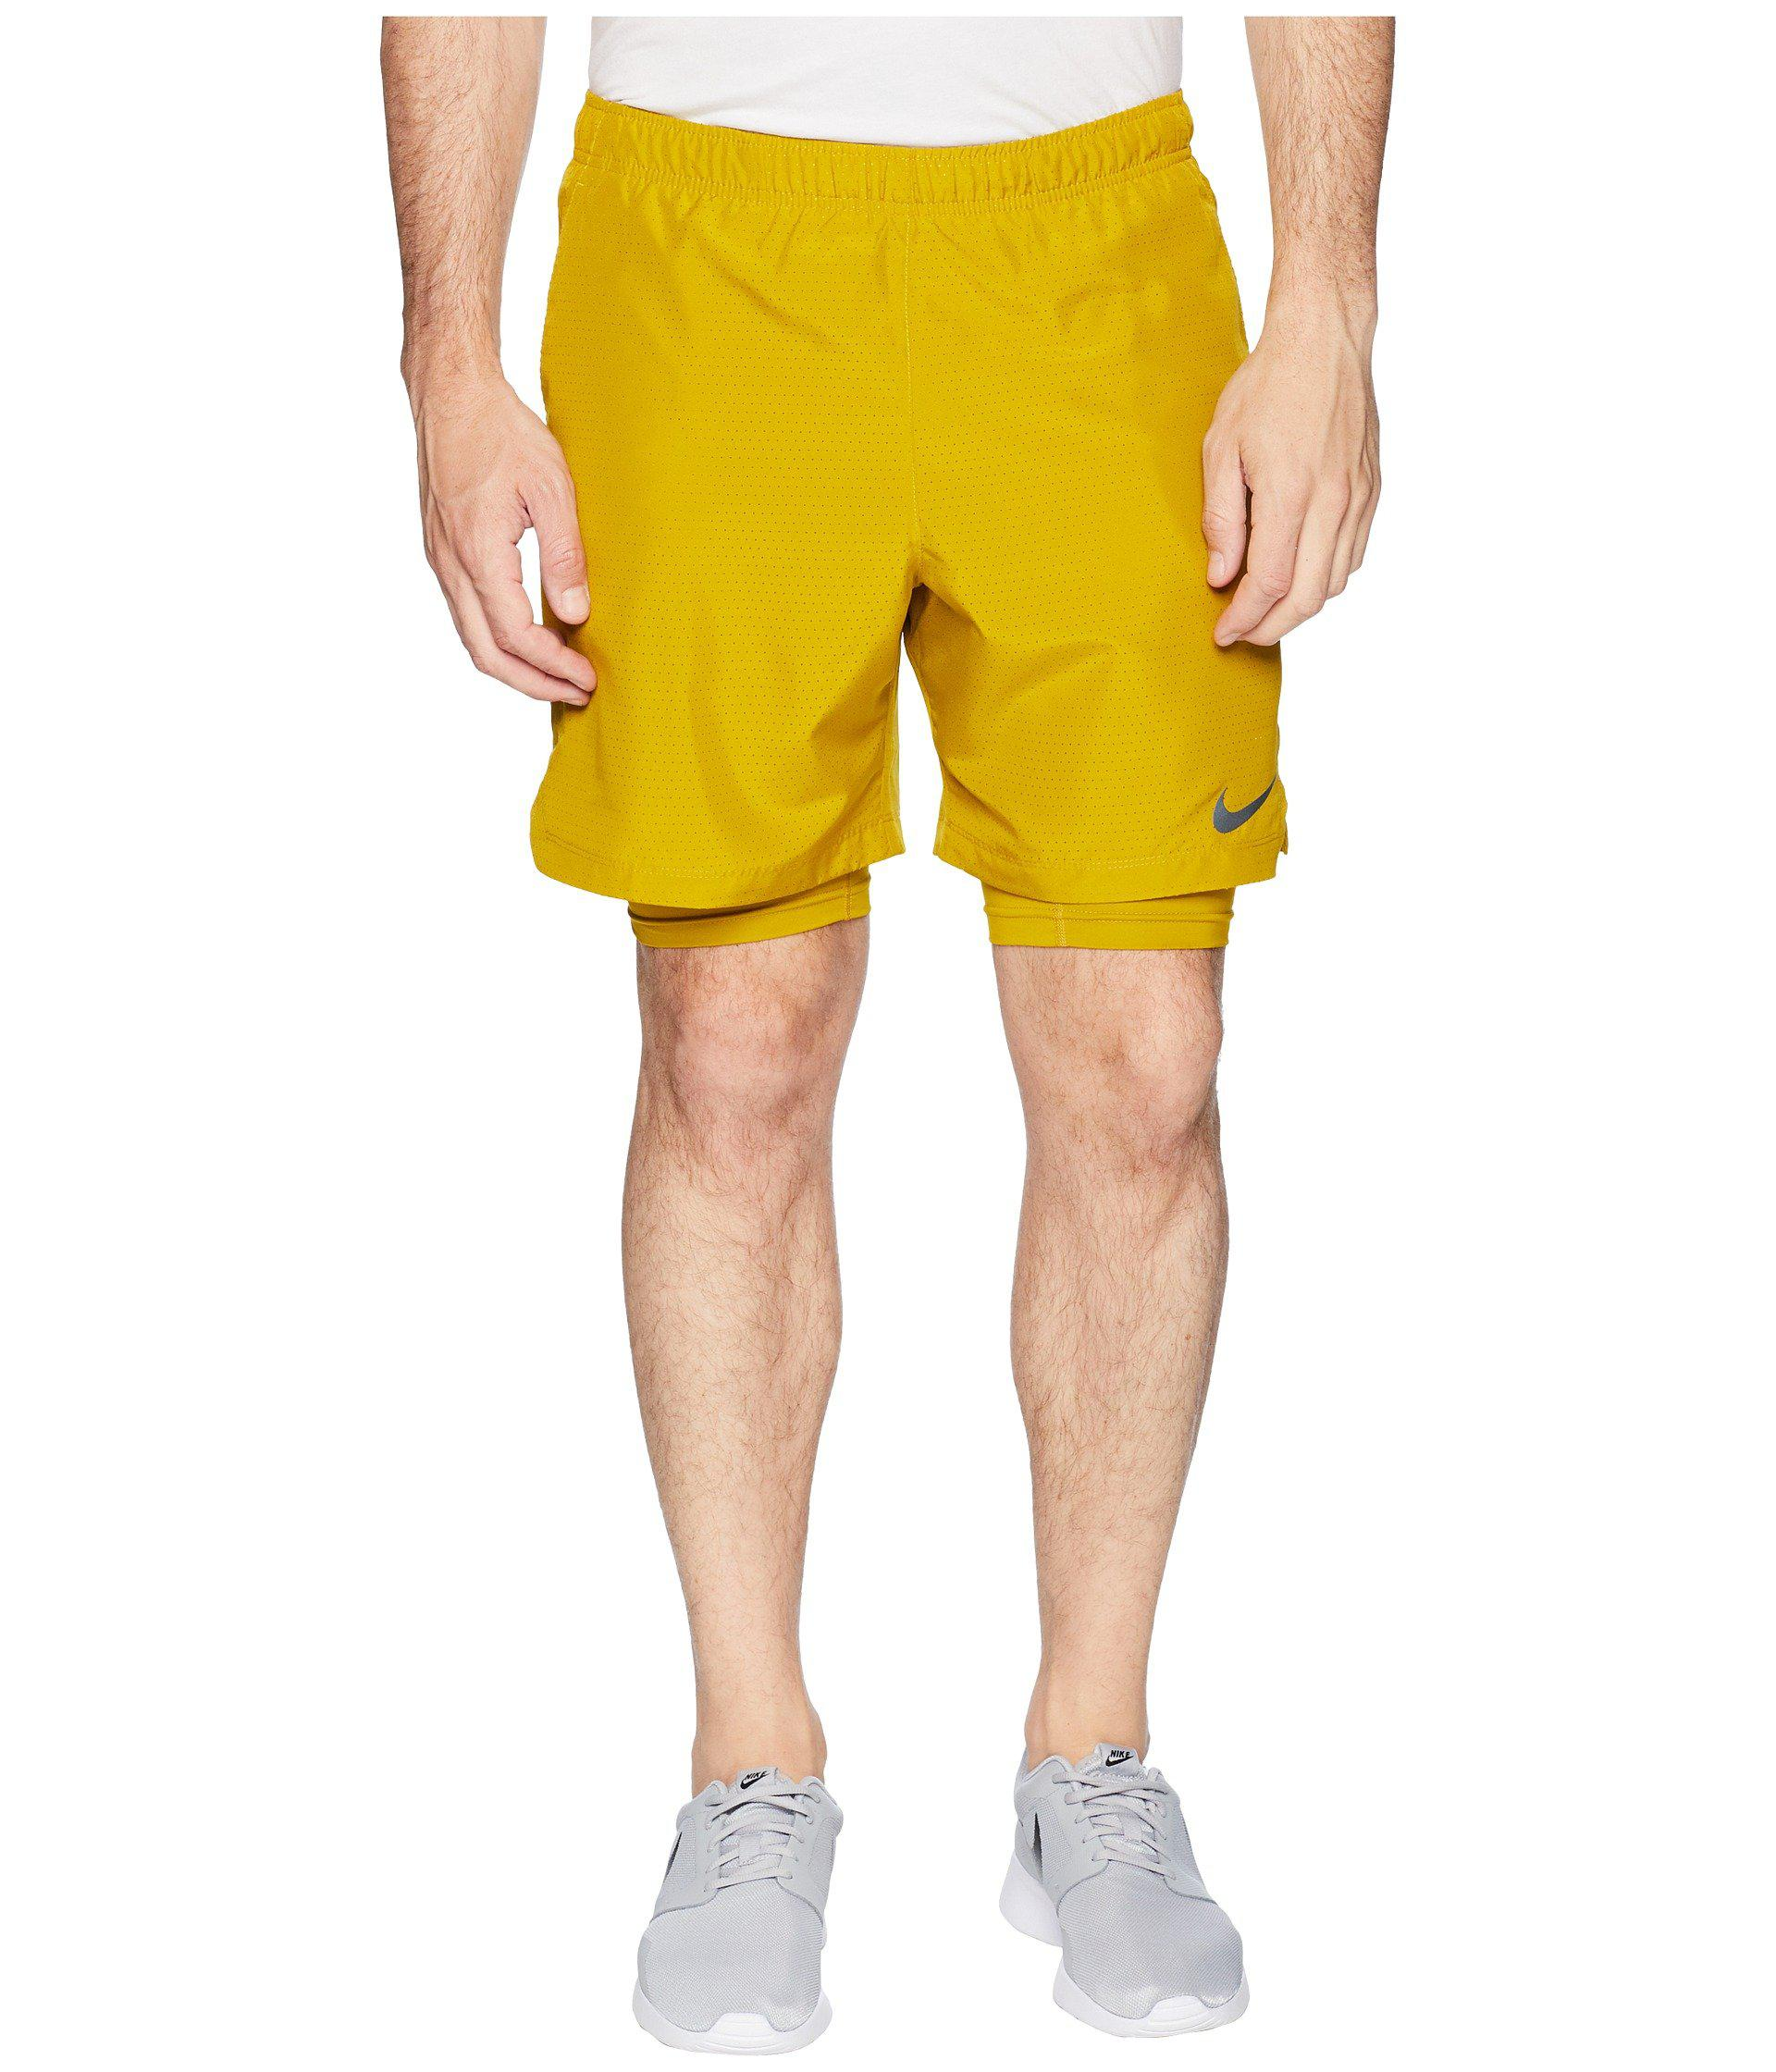 0f9e1ee0ec4 Nike - Yellow Challenger 2-in-1 Shorts 7